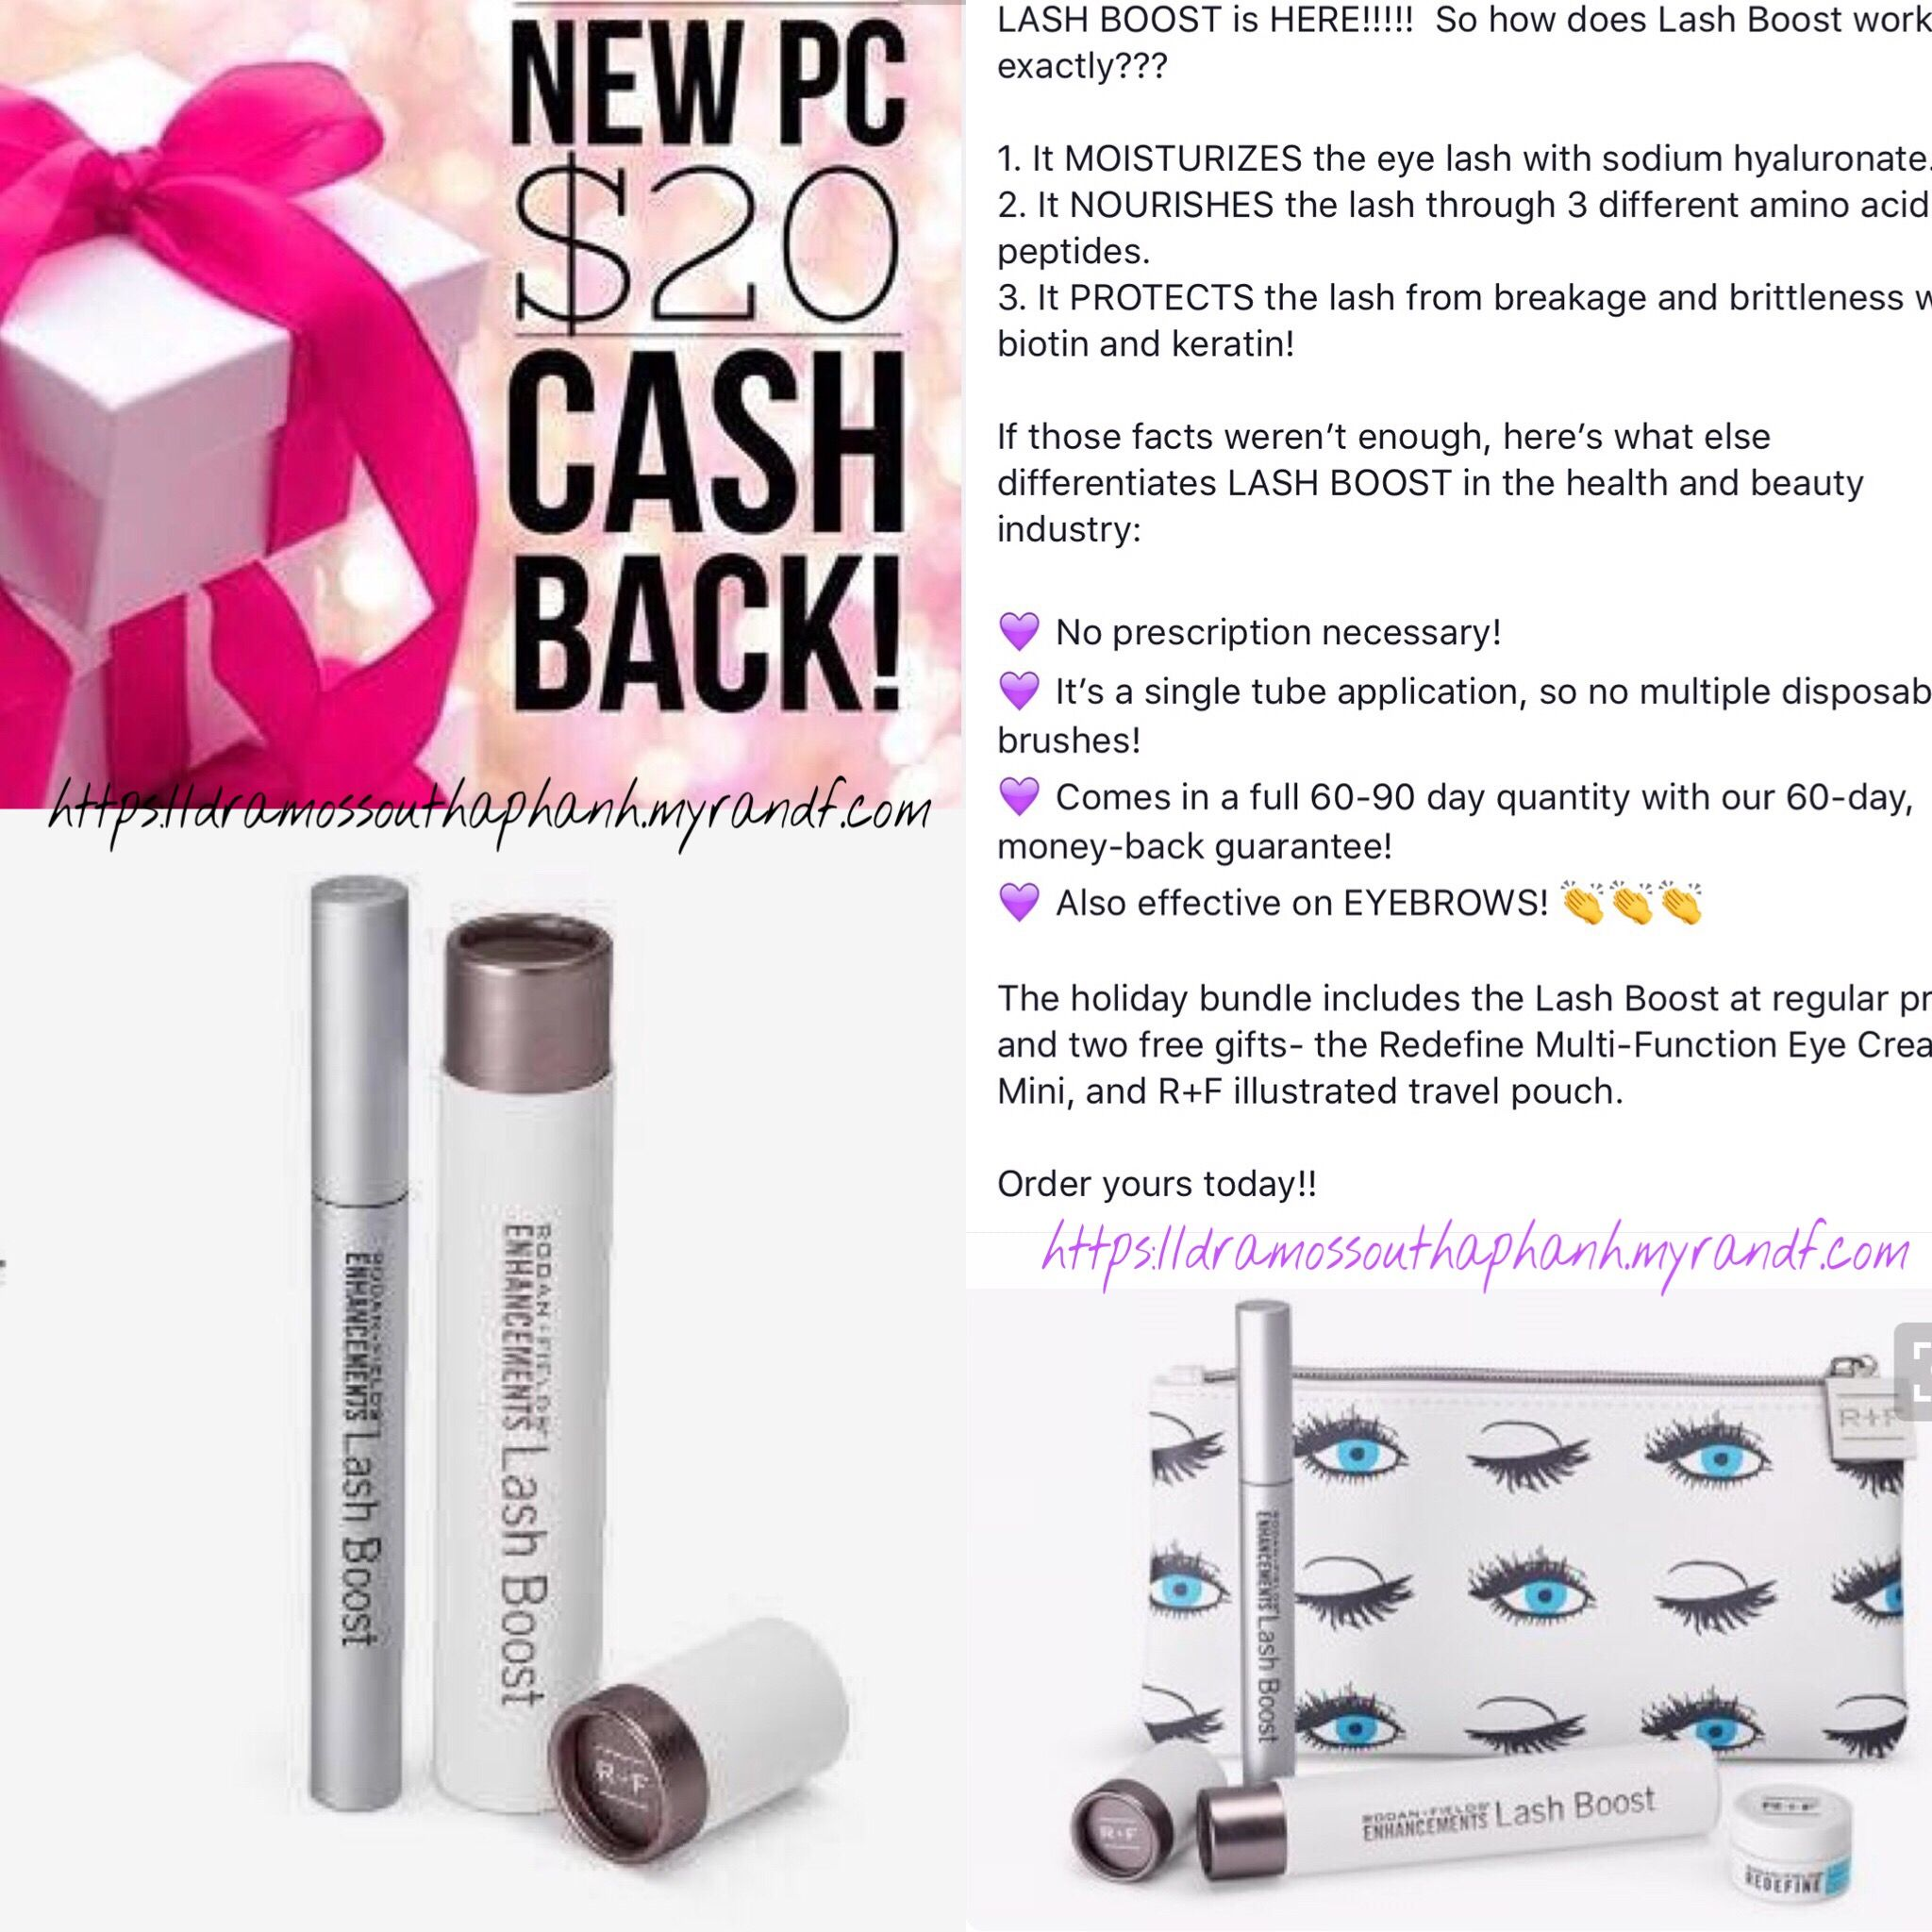 do you want to have fuller looking lashes by christmas you have do you want to have fuller looking lashes by christmas you have to order now as our average results begin at 4 weeks and peek around week bonus ❤️